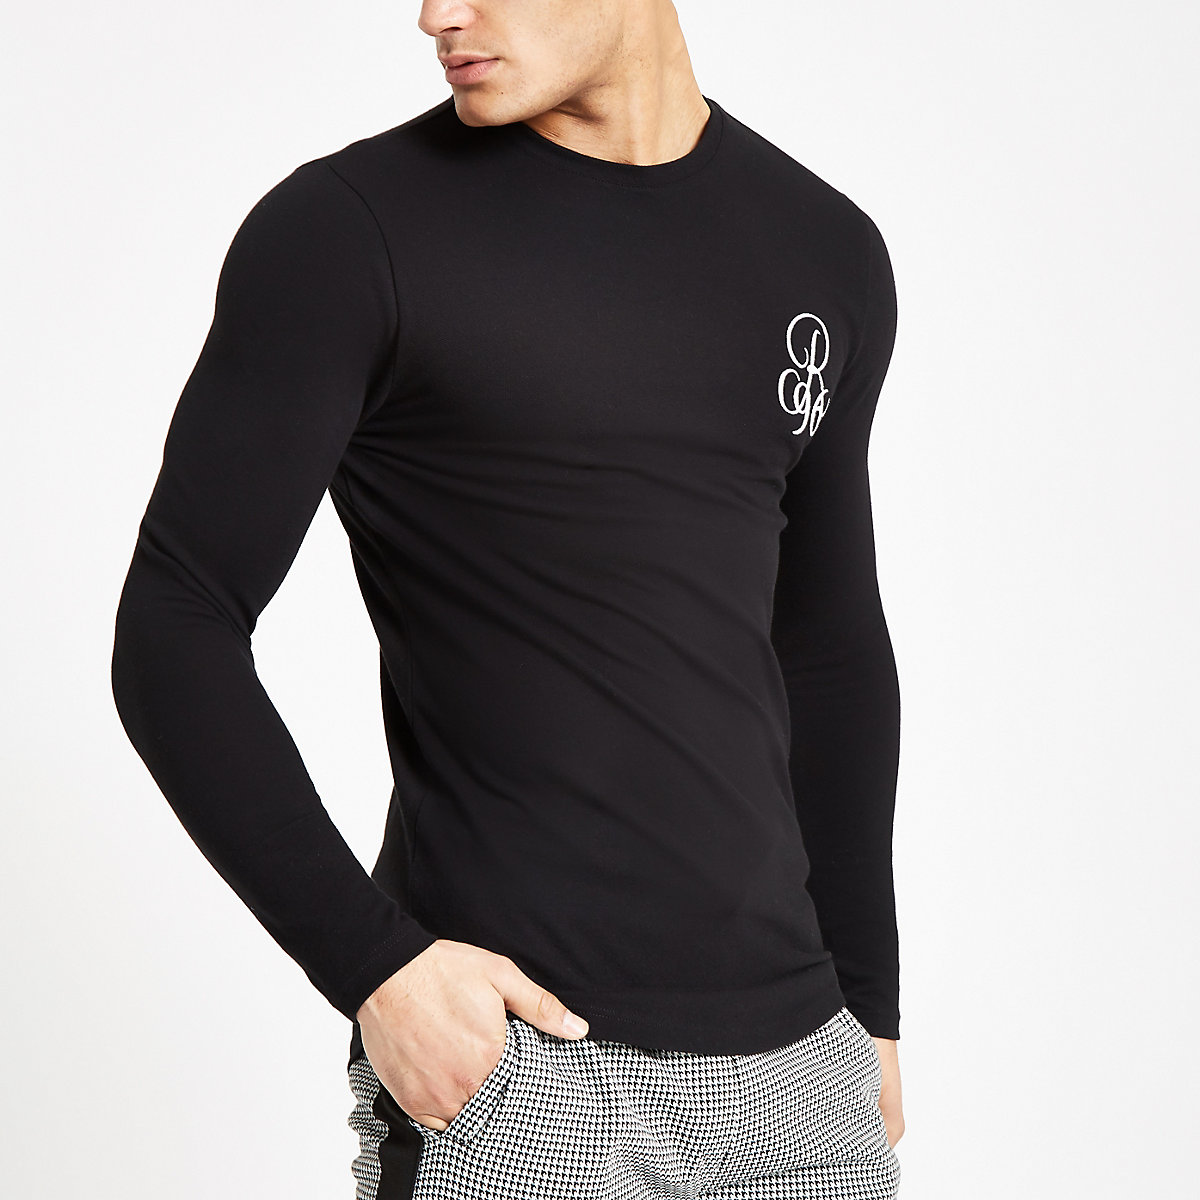 Black muscle fit 'R96' long sleeve T-shirt